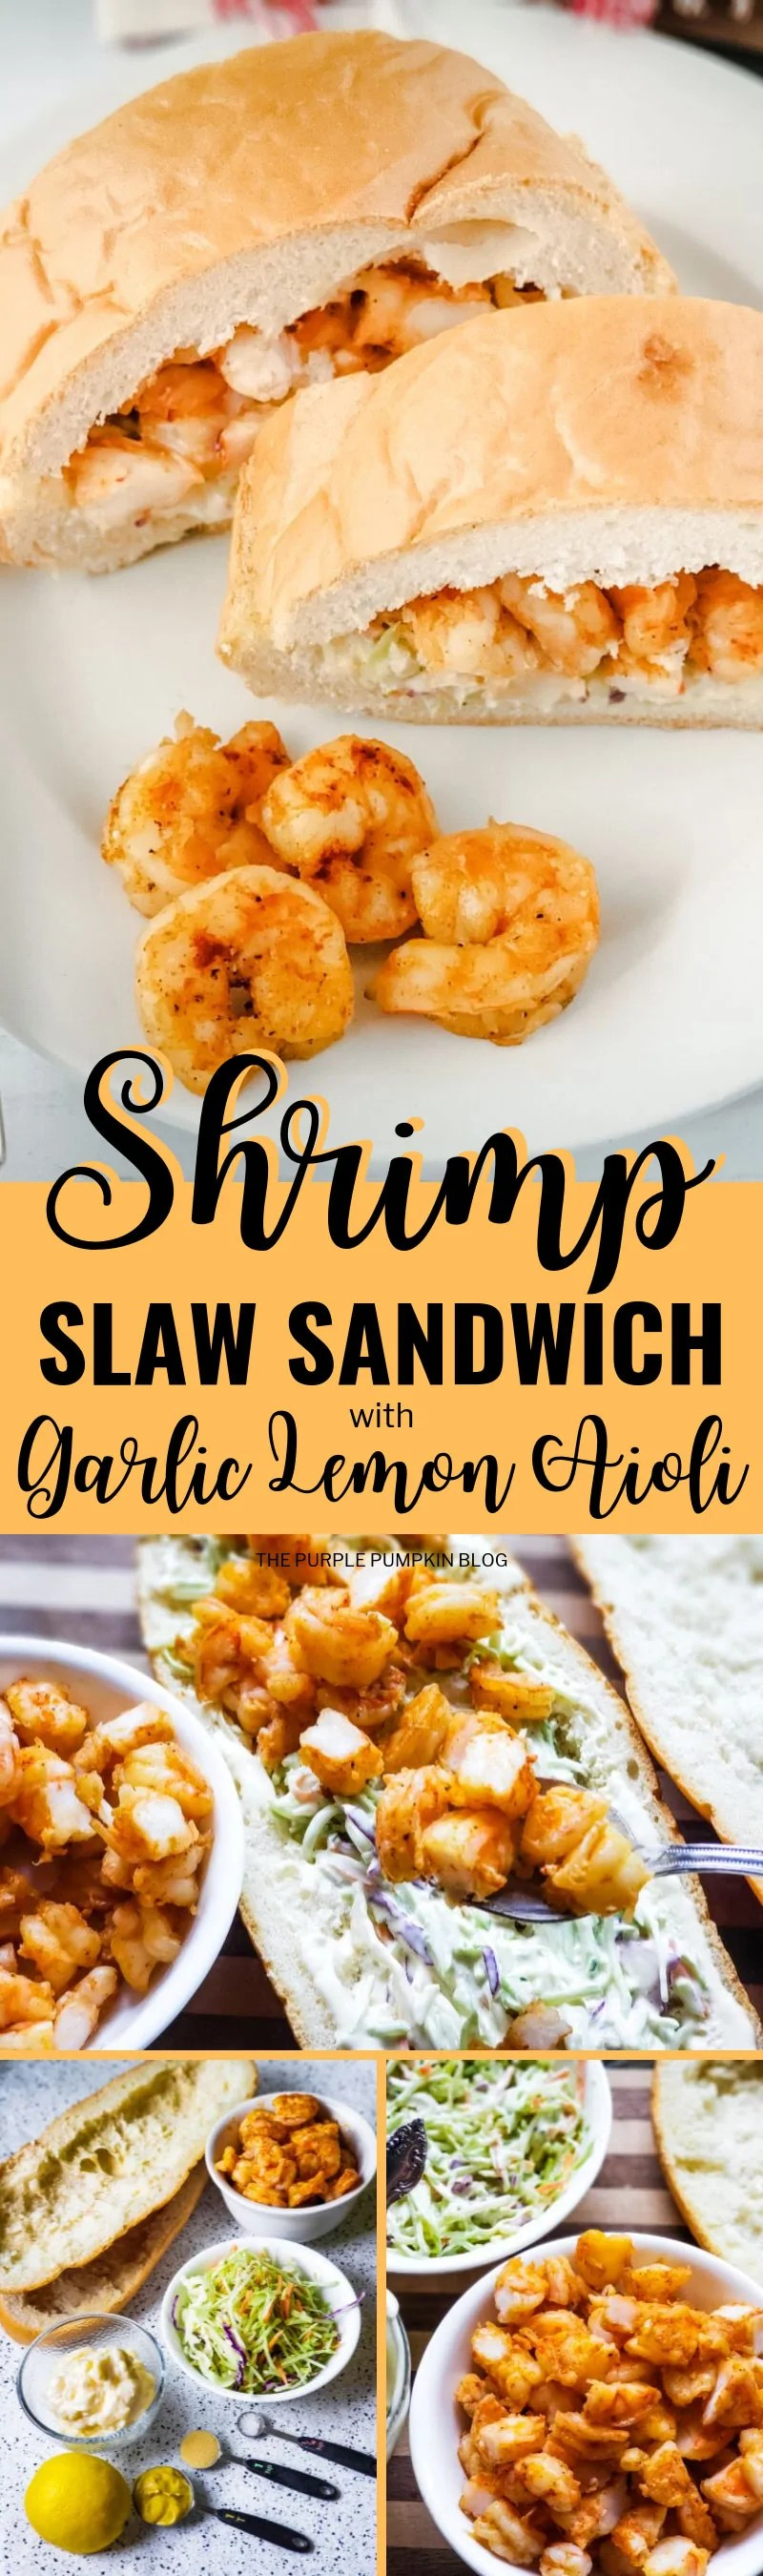 Make this Shrimp Slaw Sandwich when you have a craving for seafood - it's packed with delicious shrimp, crunchy slaw and a garlic lemon aioli (which is essentially a fancy mayo!). Enjoy for lunch, or a light summer dinner with a cold beverage; or serve at a summer gathering with friends. It's a recipe that's easy to prepare and full of flavour. #shrimpslawsandwich #sandwiches #thepurplepumpkinblog #recipes